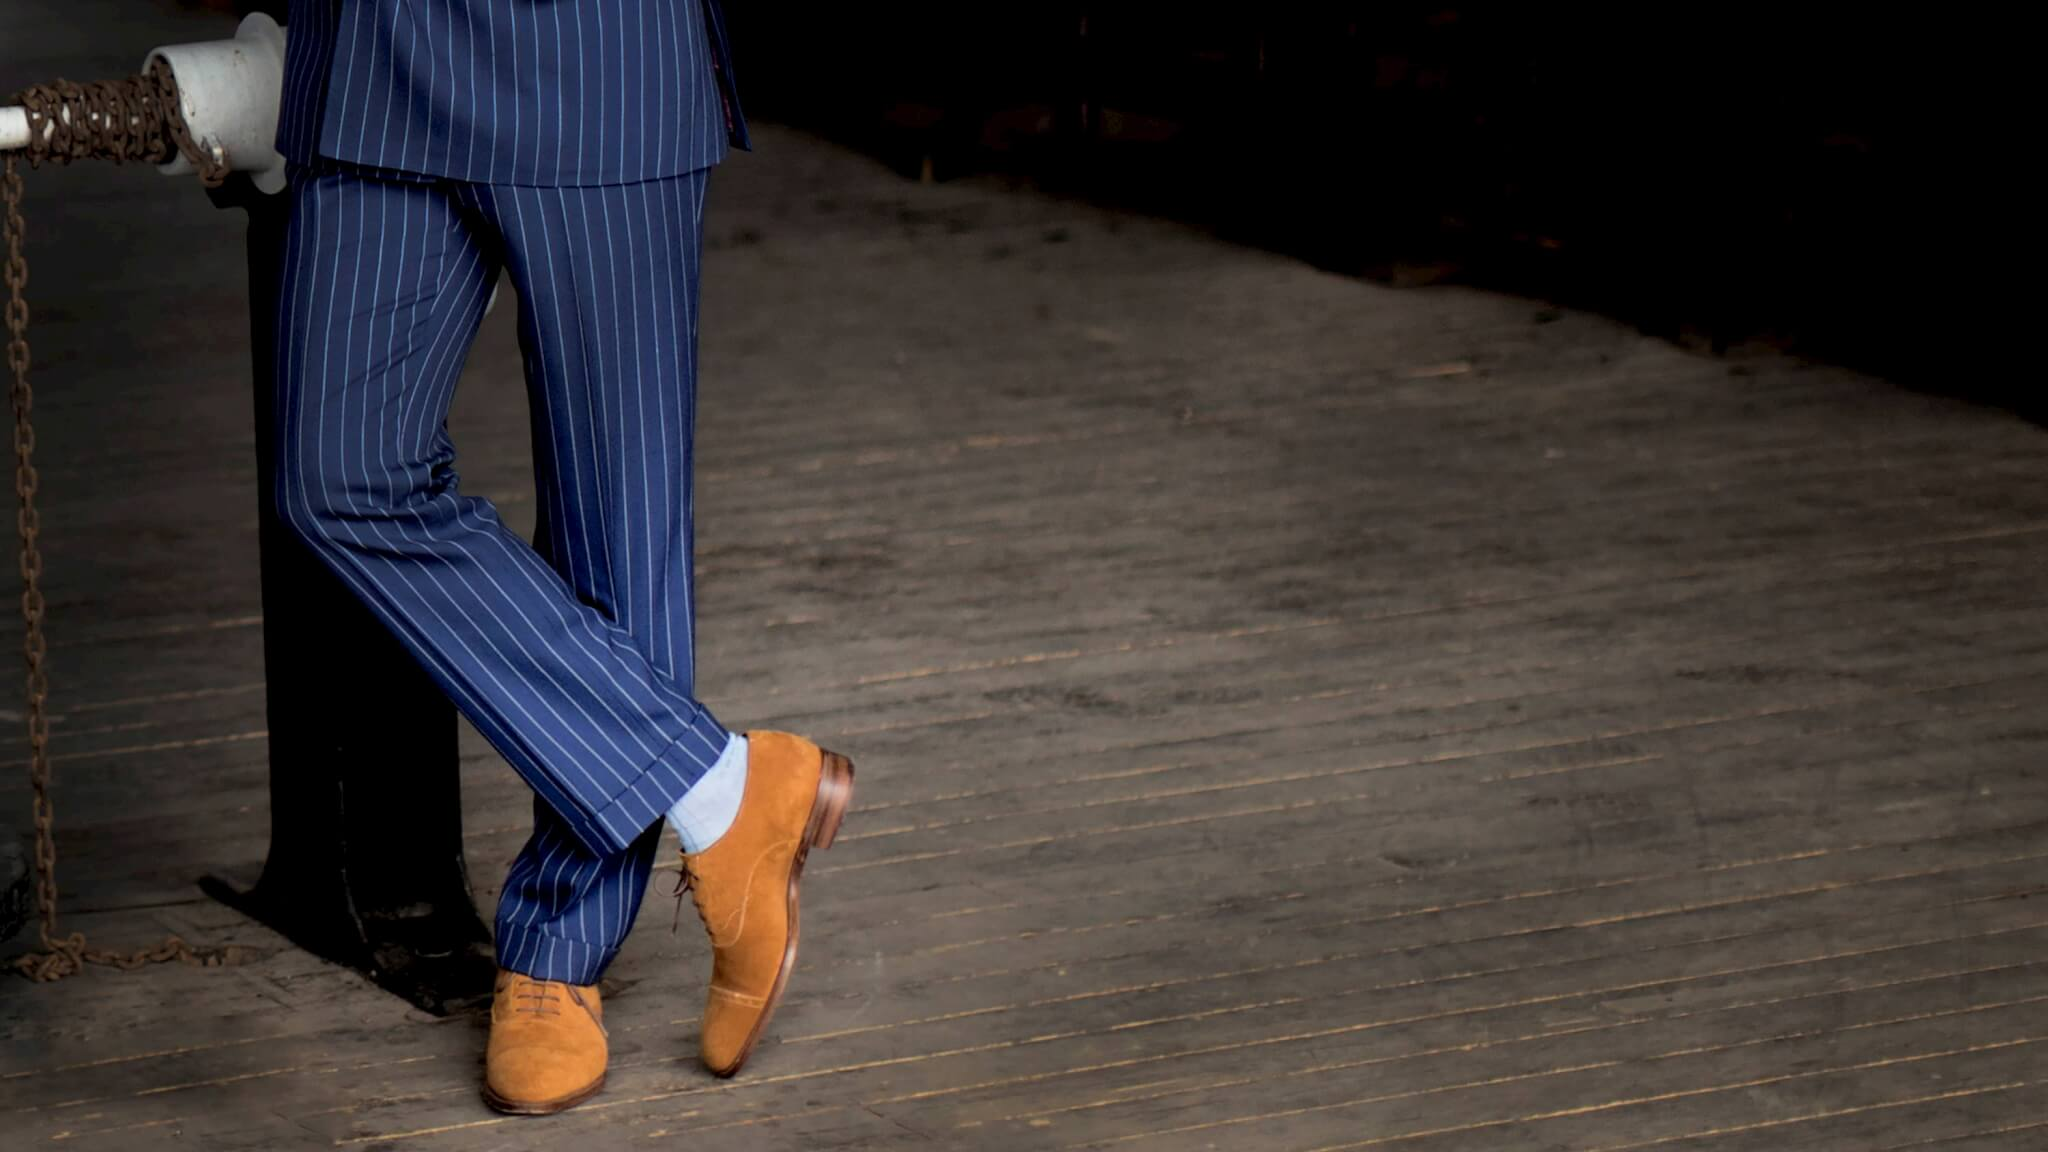 cad-and-the-dandy-blue-socks